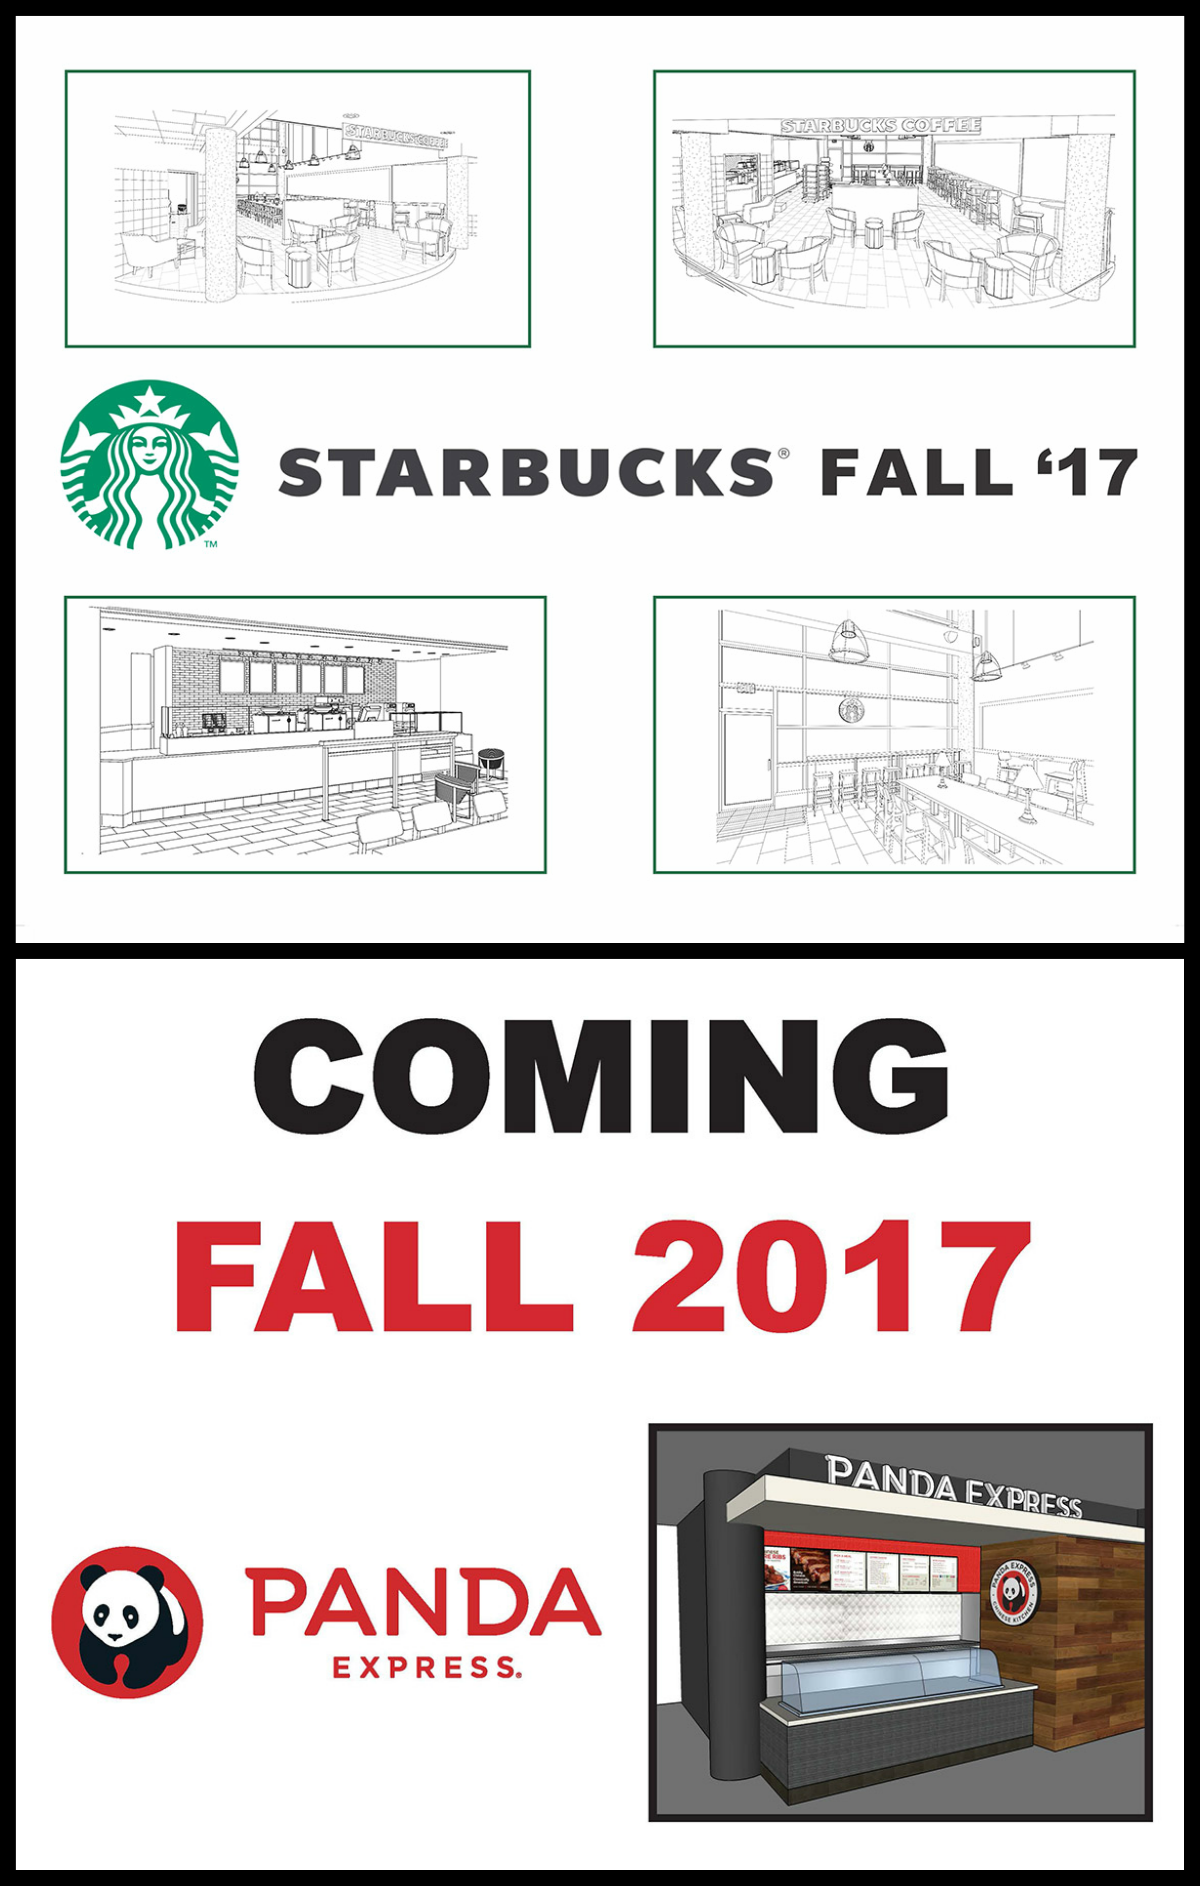 Albert E's food court and Starbucks both will close for construction purposes until August 2017